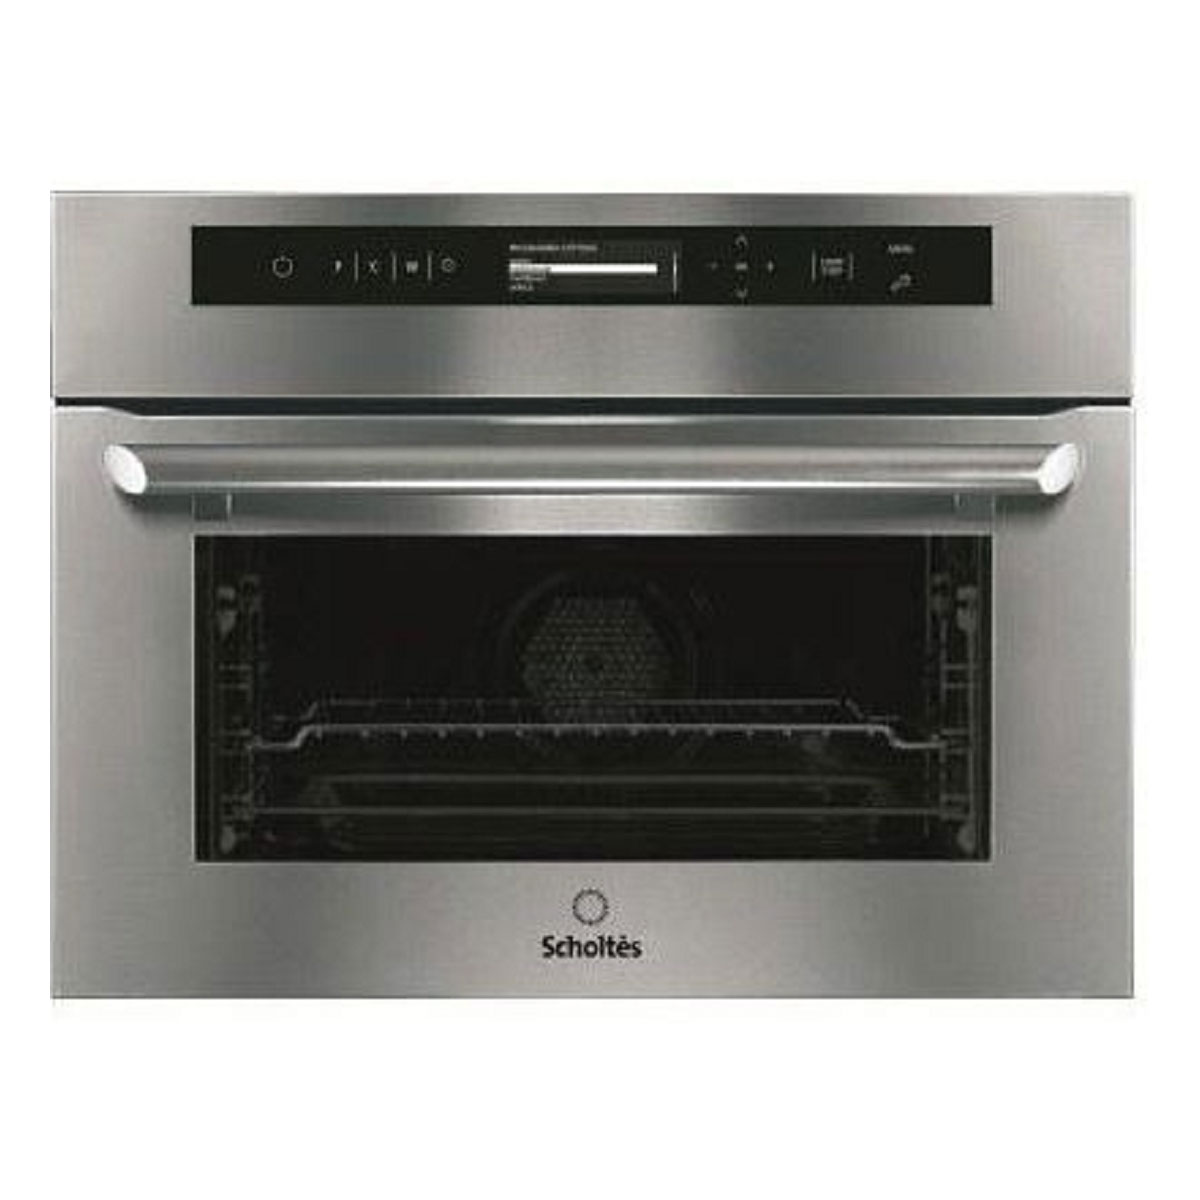 Scholtes  SMW2 60cm Electric Combi Microwave Oven 27256